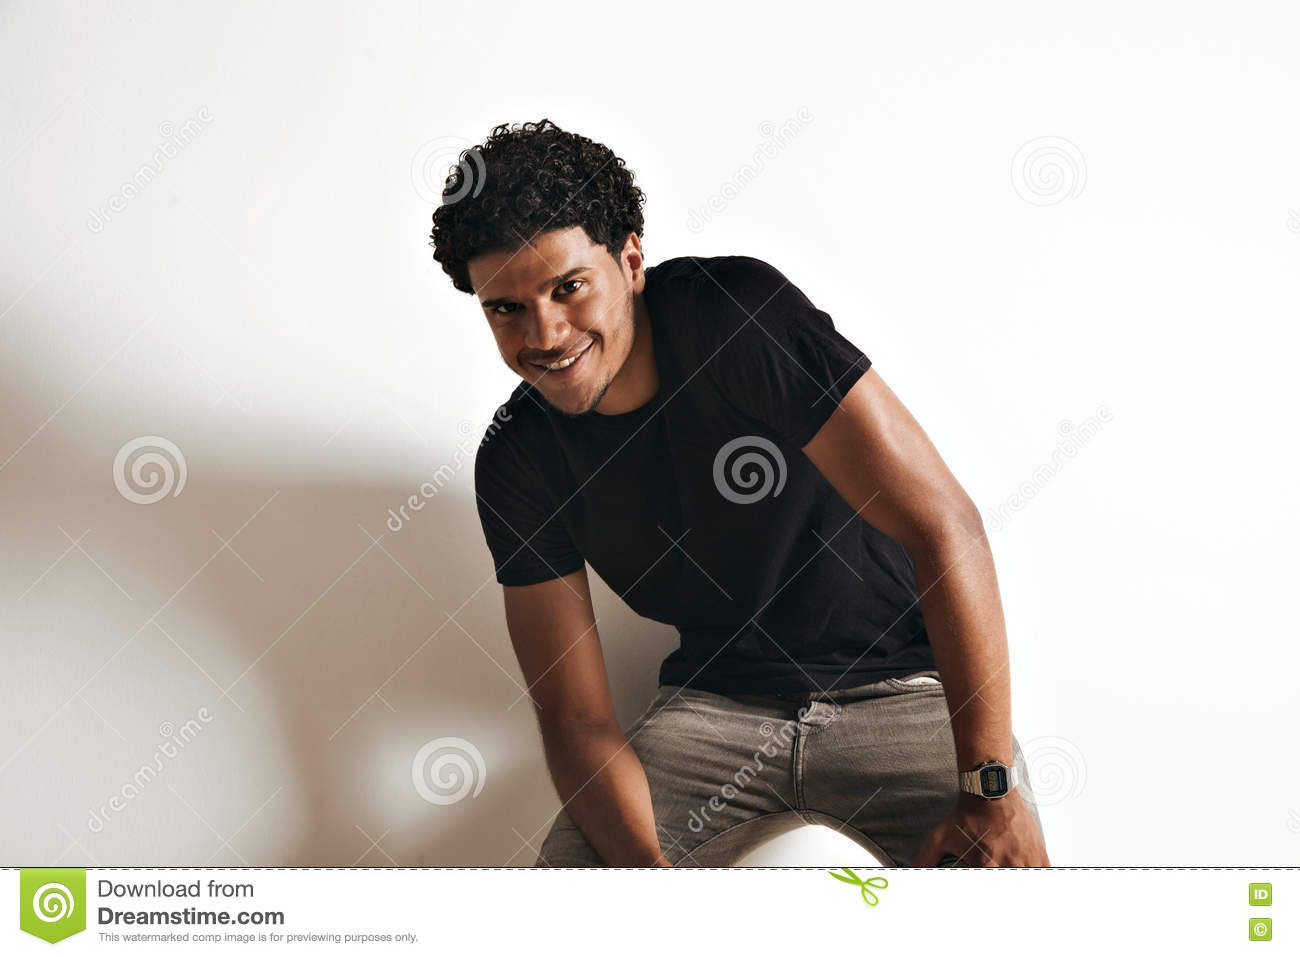 Playful in motion photo of a smiling black young man in a plain black cotton t shirt and grey jeans against white wall background